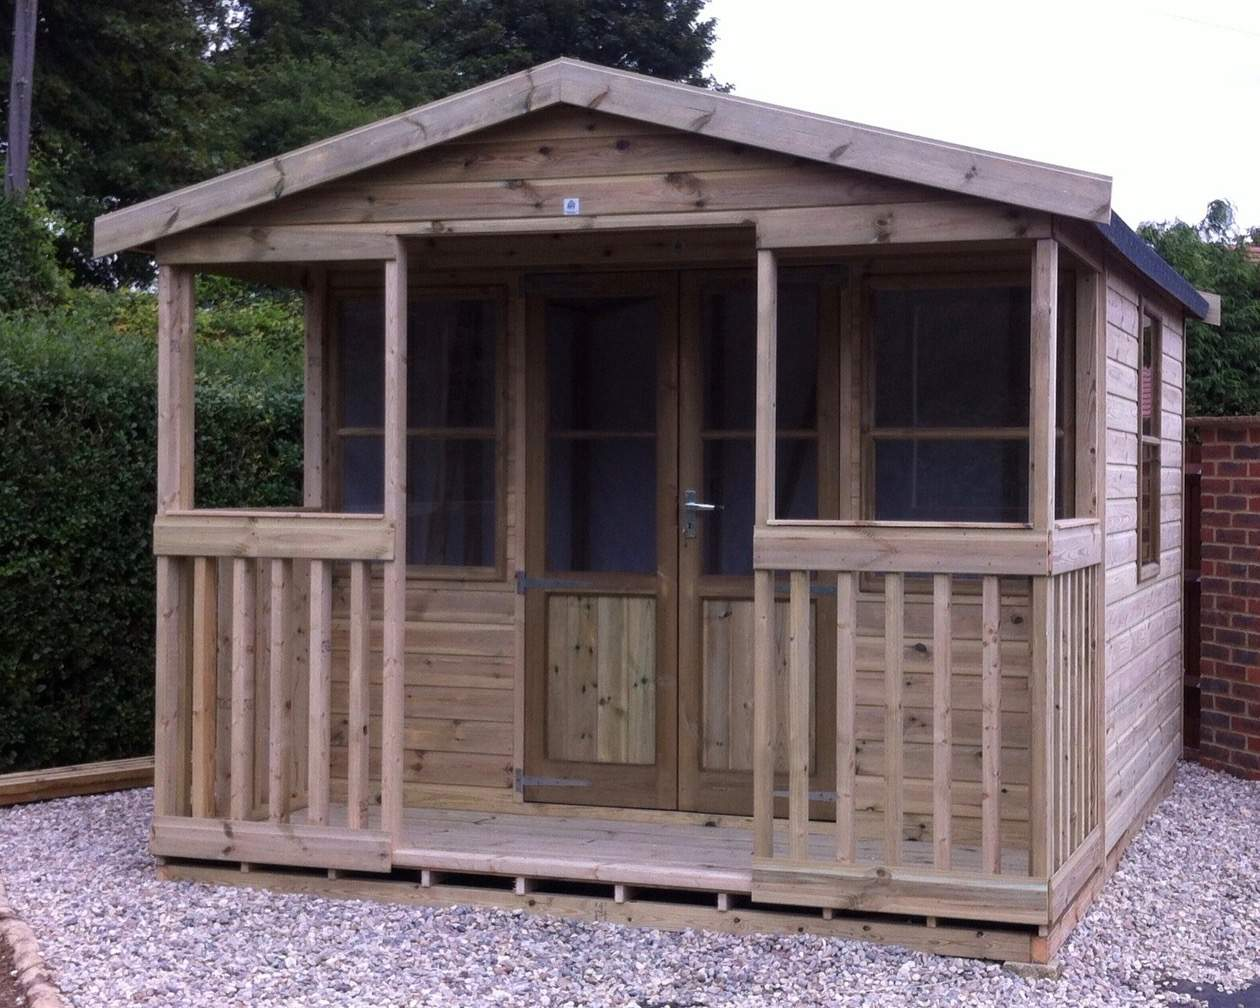 The Tonbridge Chalet Summerhouse